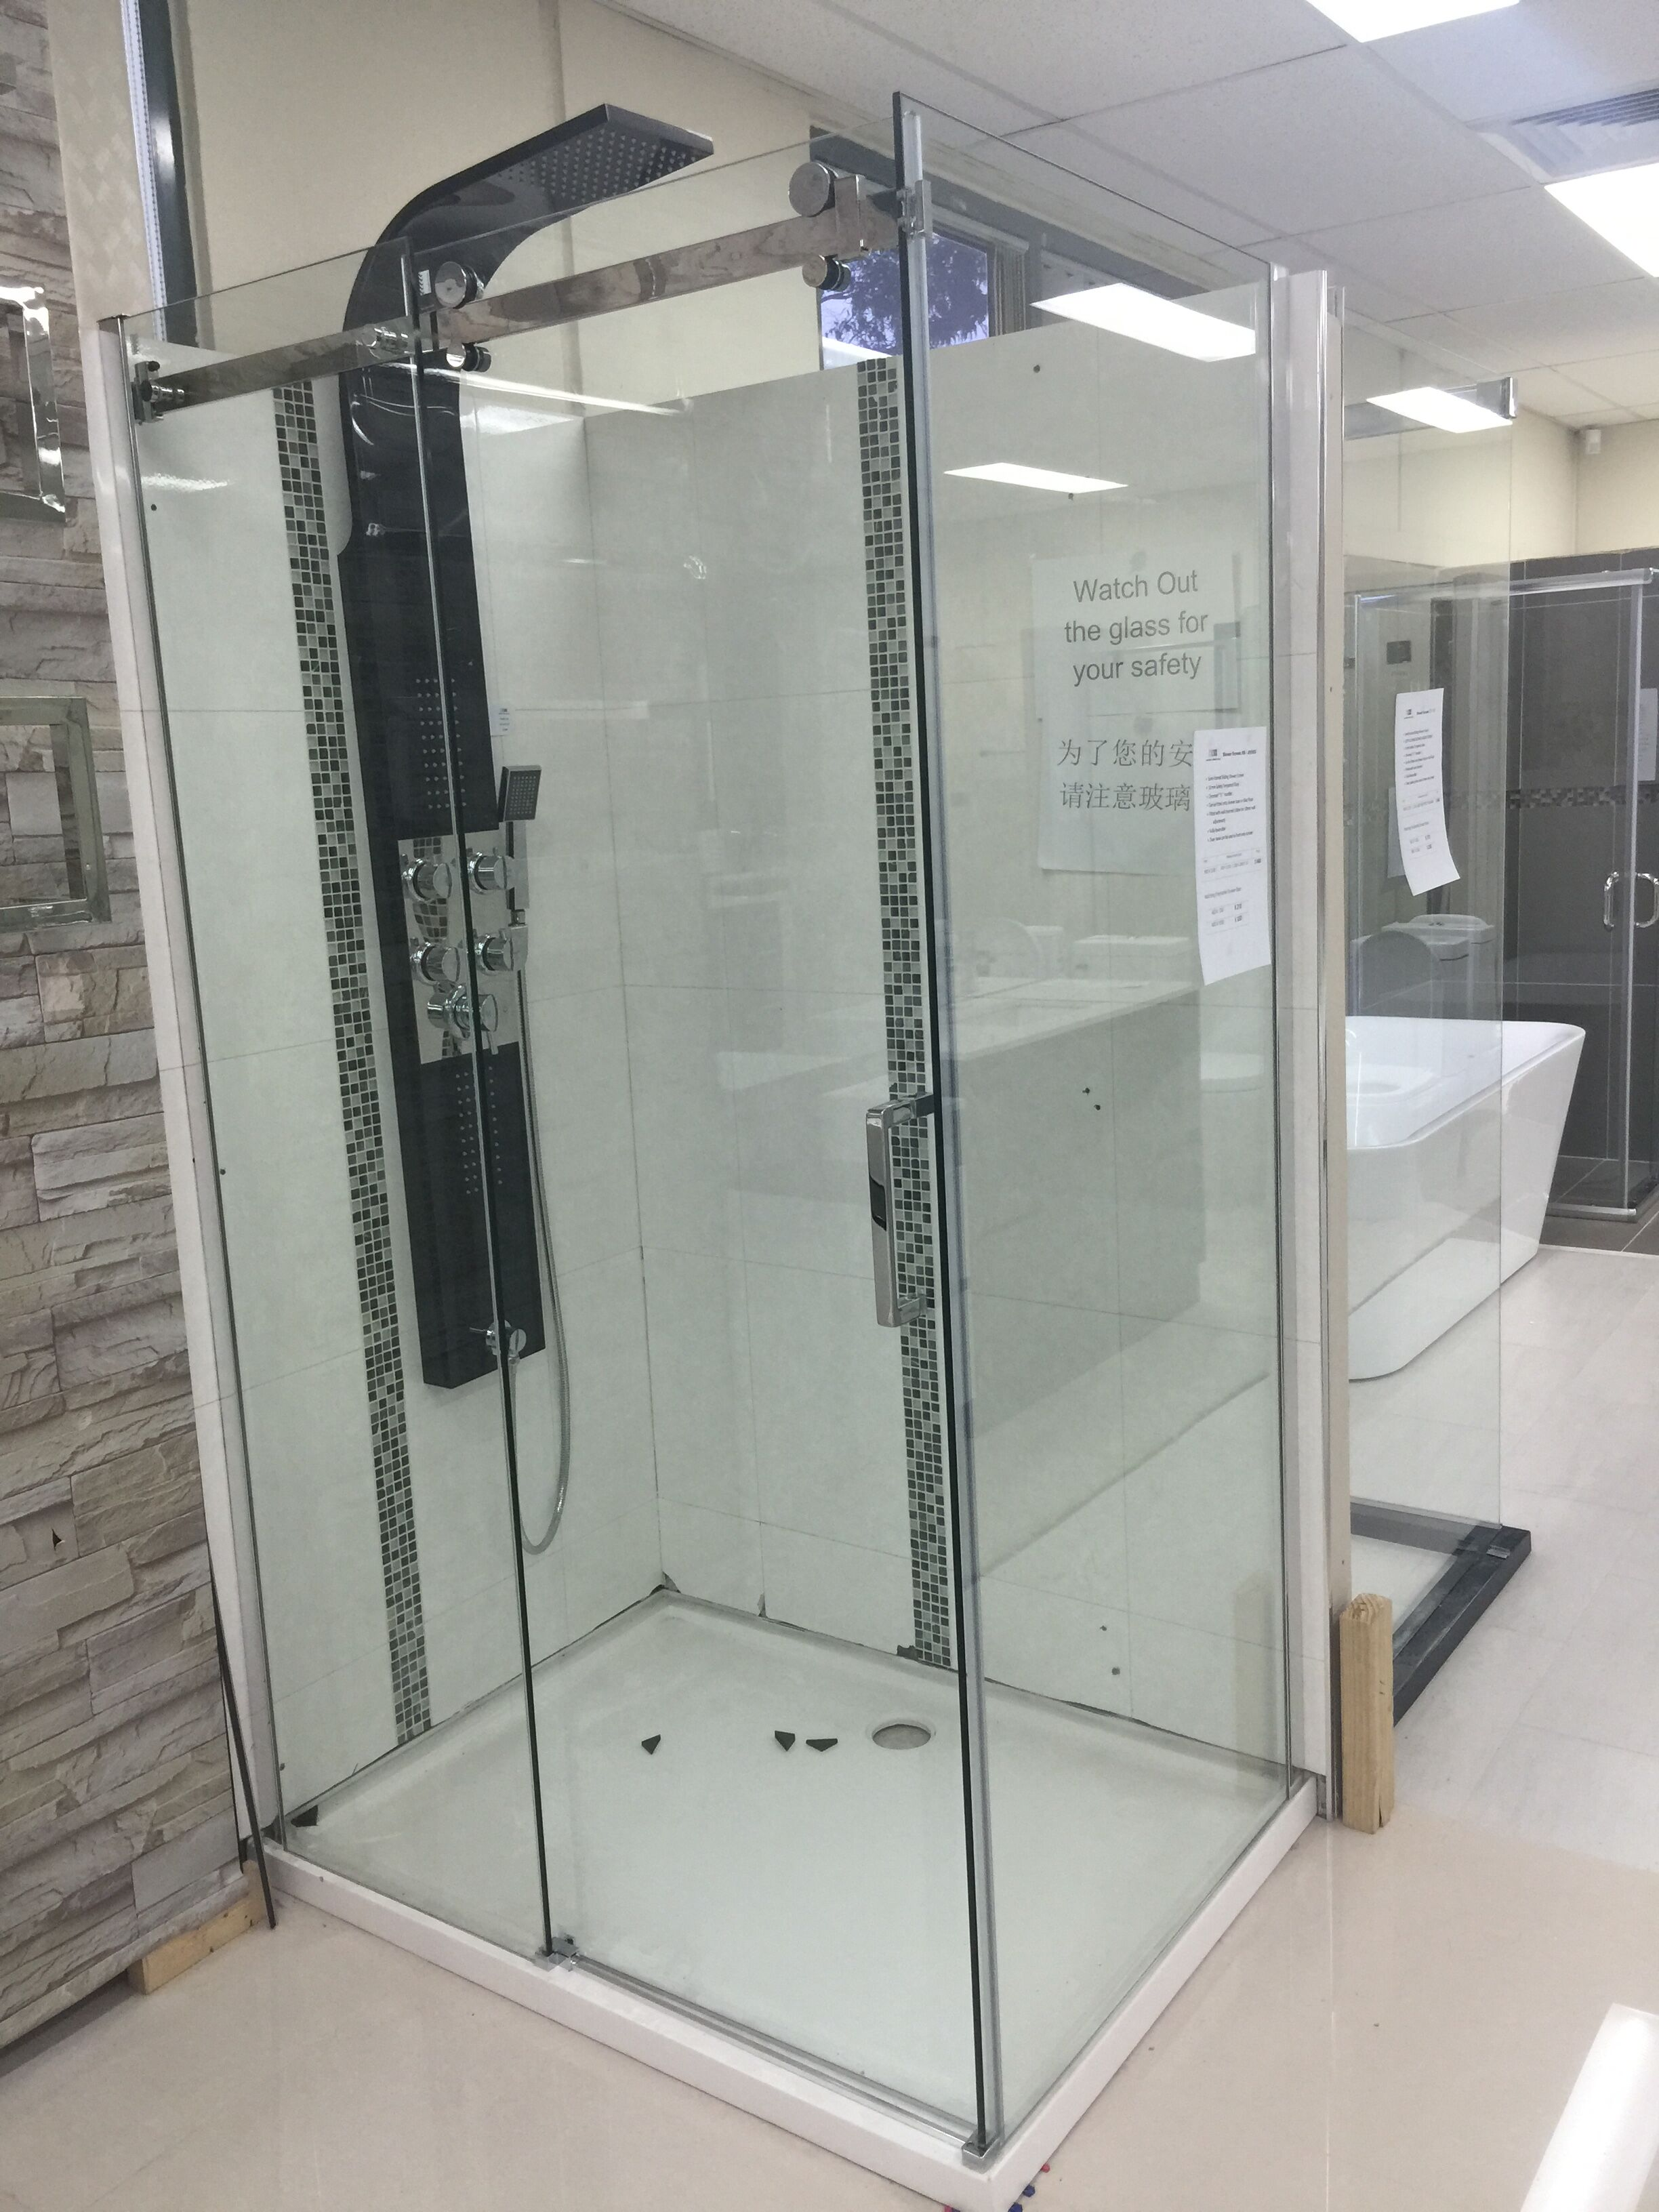 Sliding shower screen - Bayswater Bathroom Direct Melbourne Bathroom Toilet Vanity Shower Basin Sink Laundry Clearance 1200x900x10mm Sliding Door Wall To Wall Shower Screen